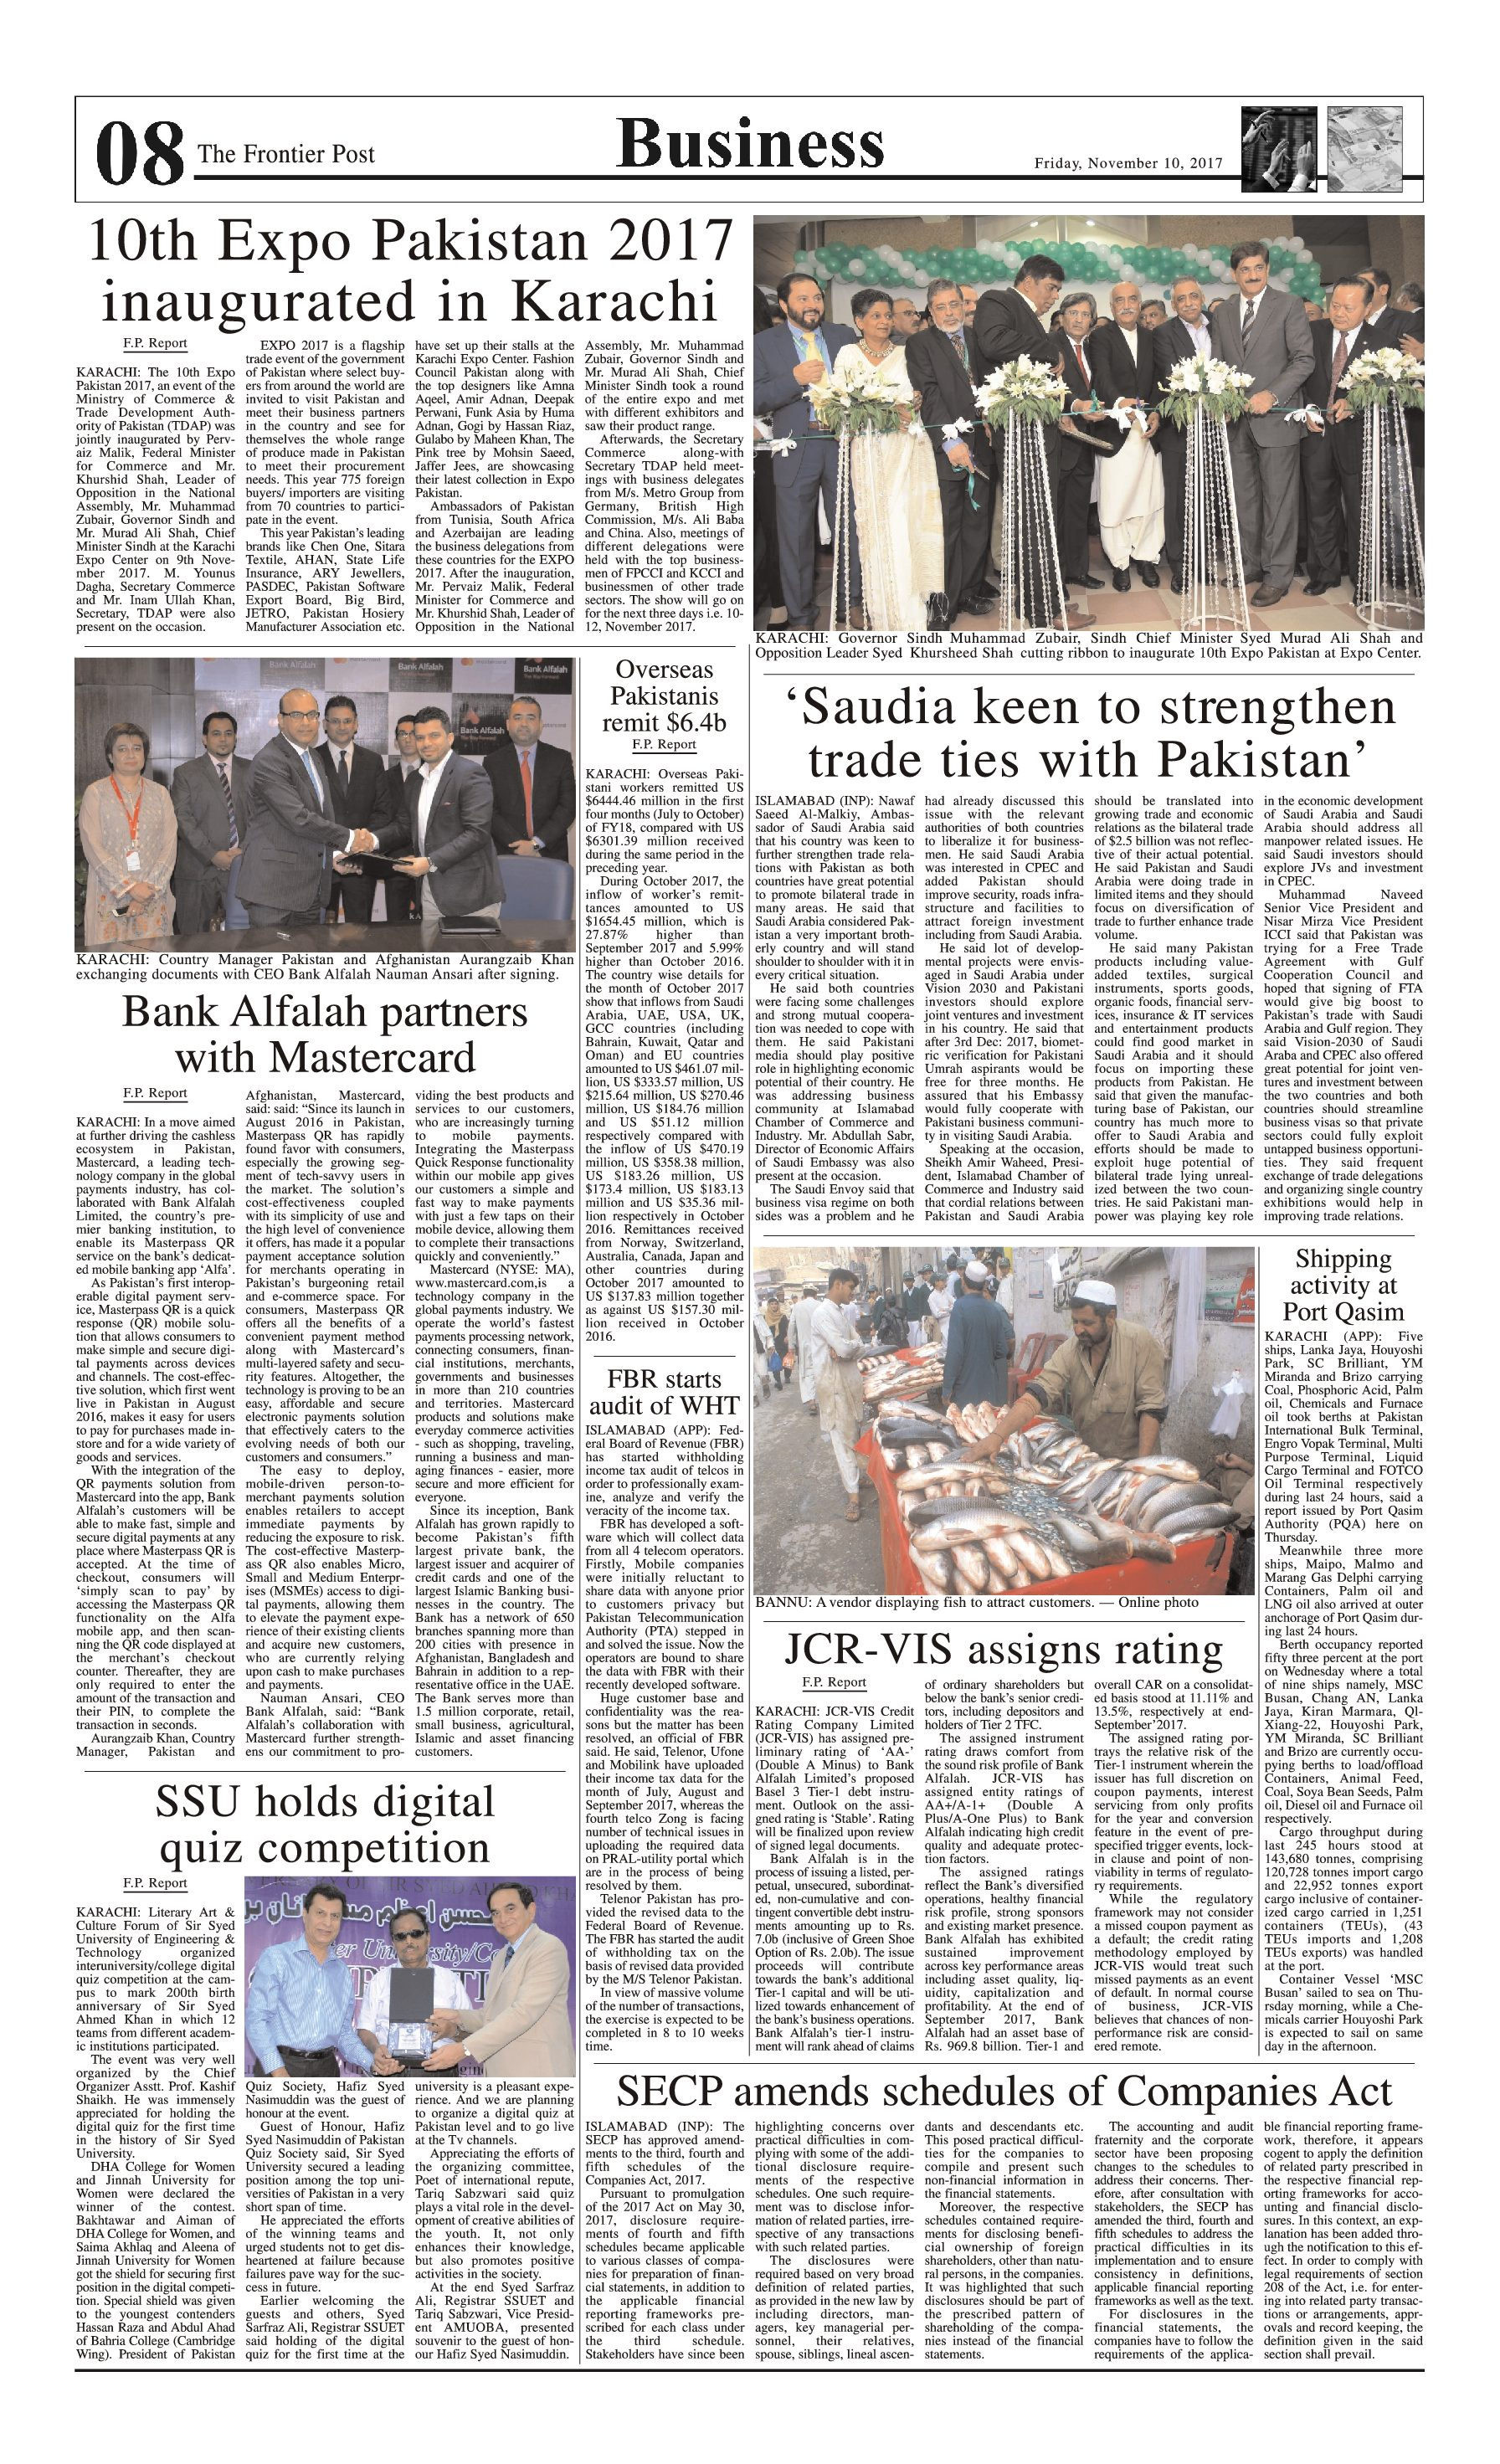 Business Page 10-11